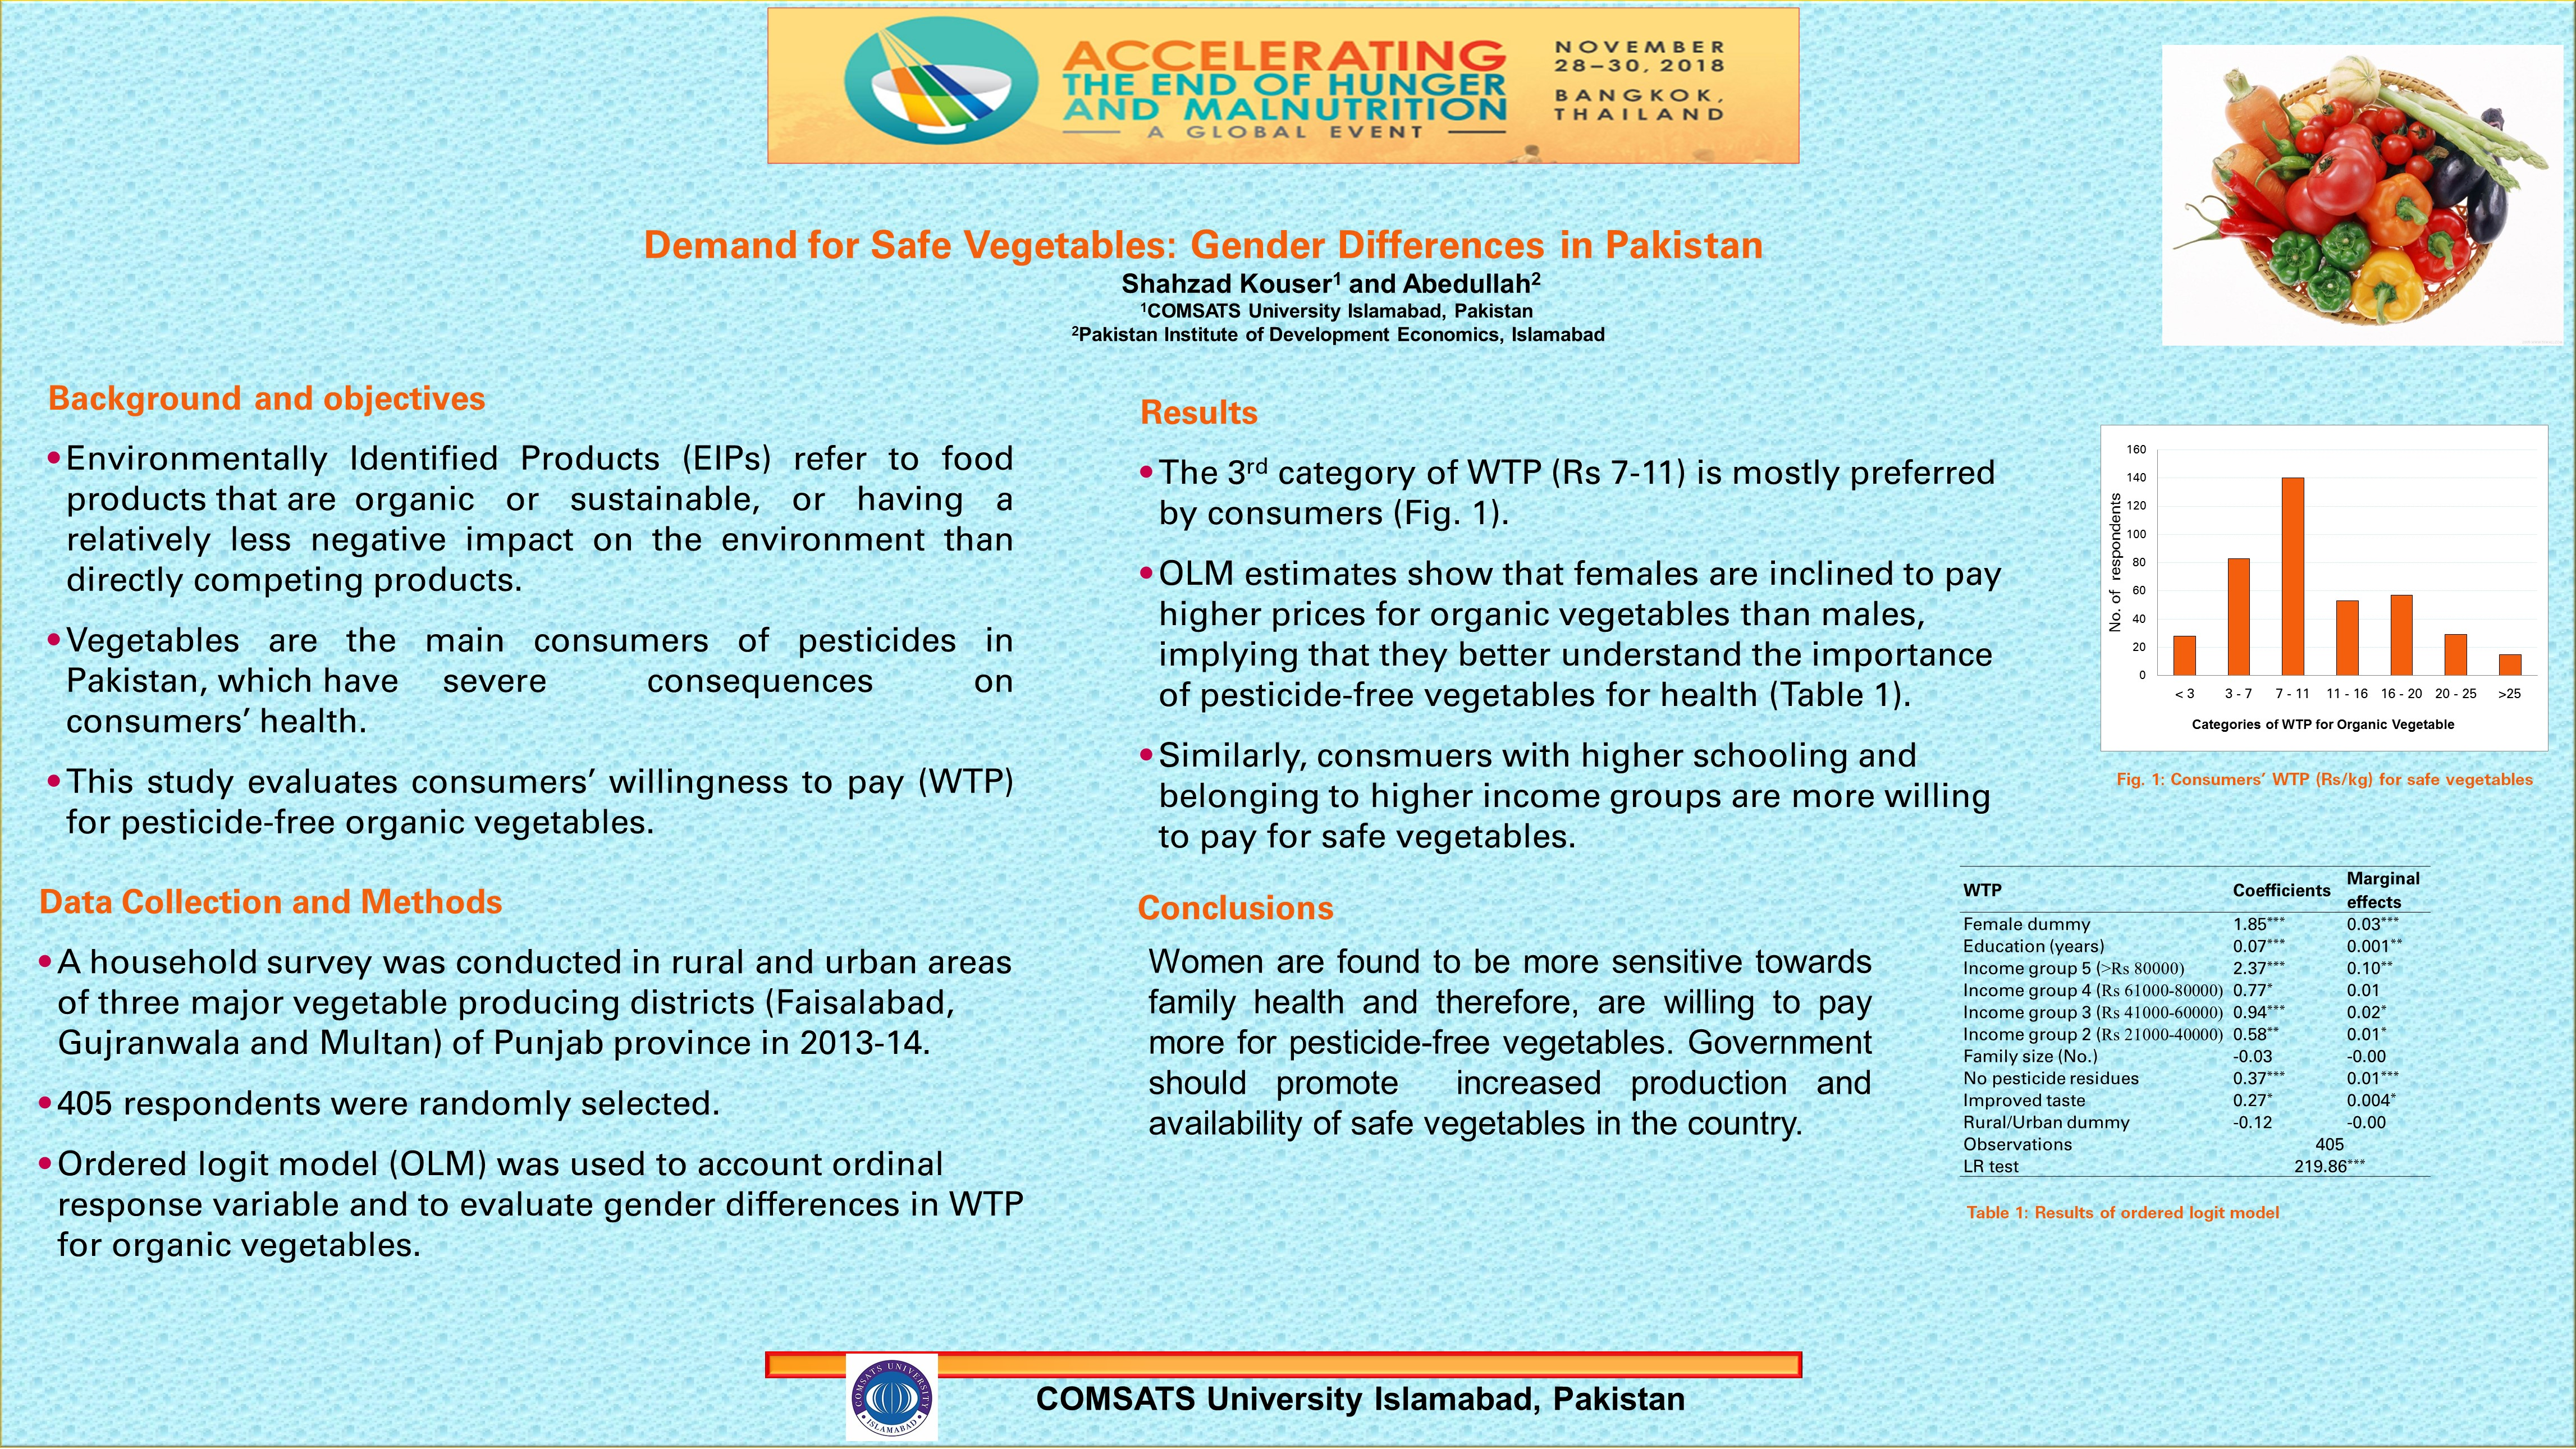 Demand for Safe Vegetables: Gender Differences in Pakistan